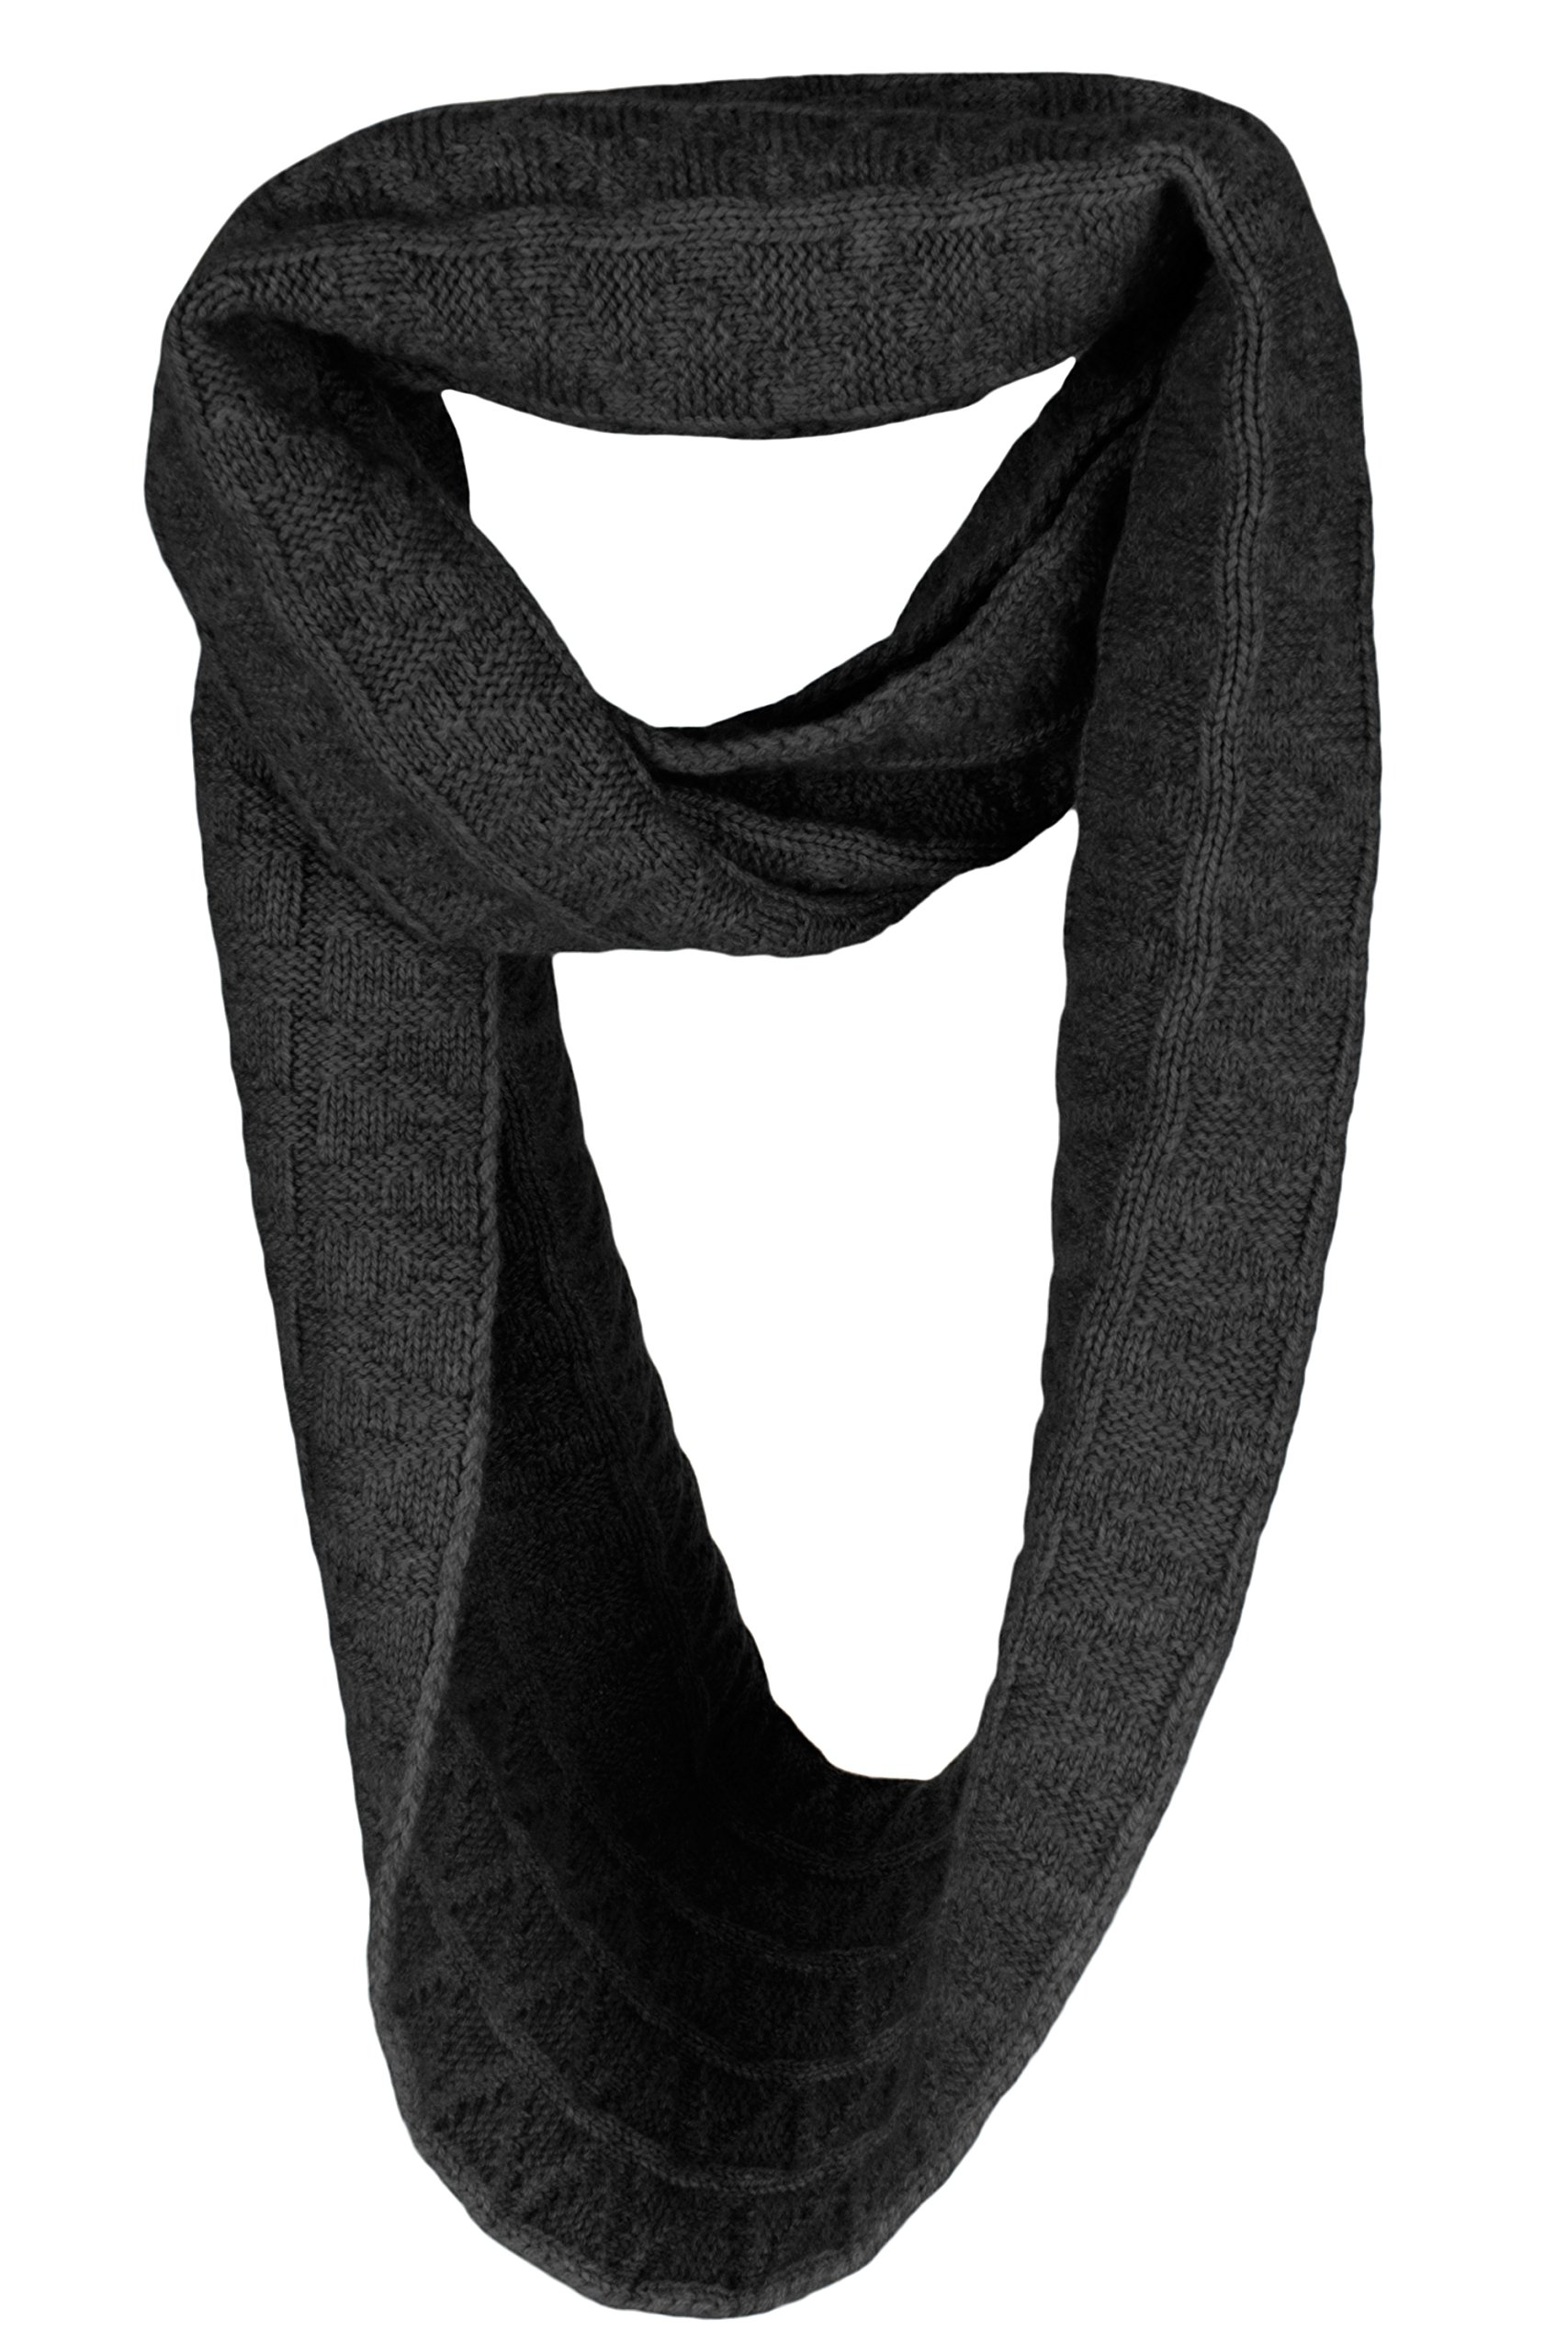 Love Cashmere Mens Zig-Zag 100% Cashmere Infinity Scarf Snood - Dark Gray - made in Scotland